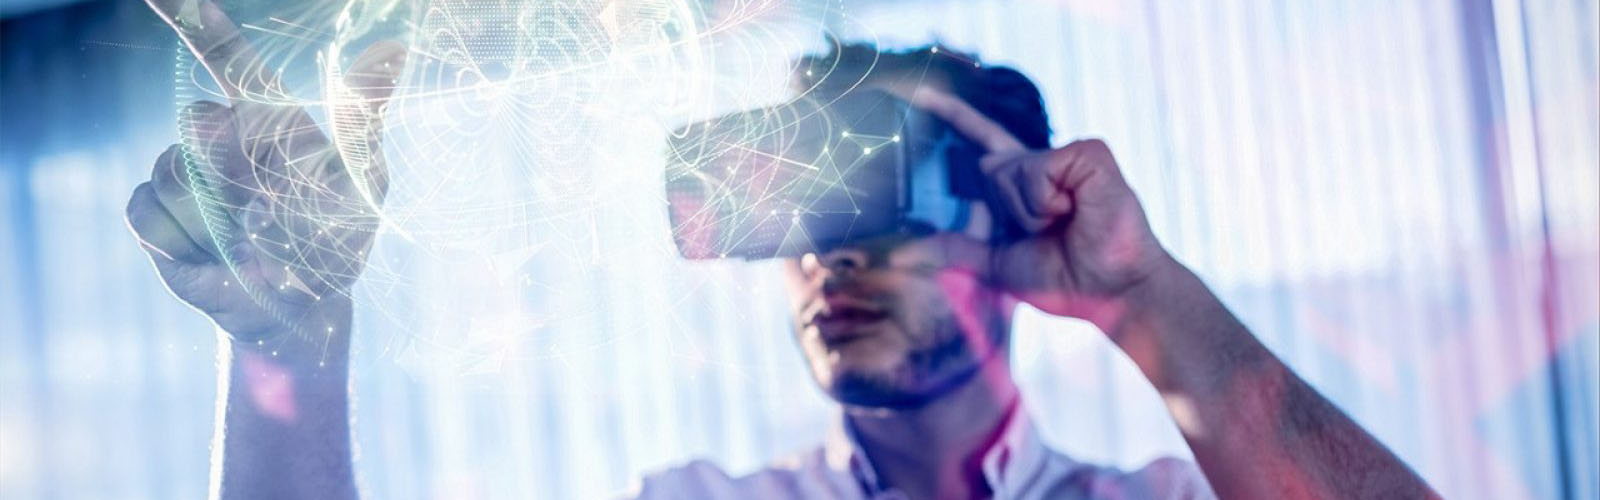 Virtual reality market in 2019